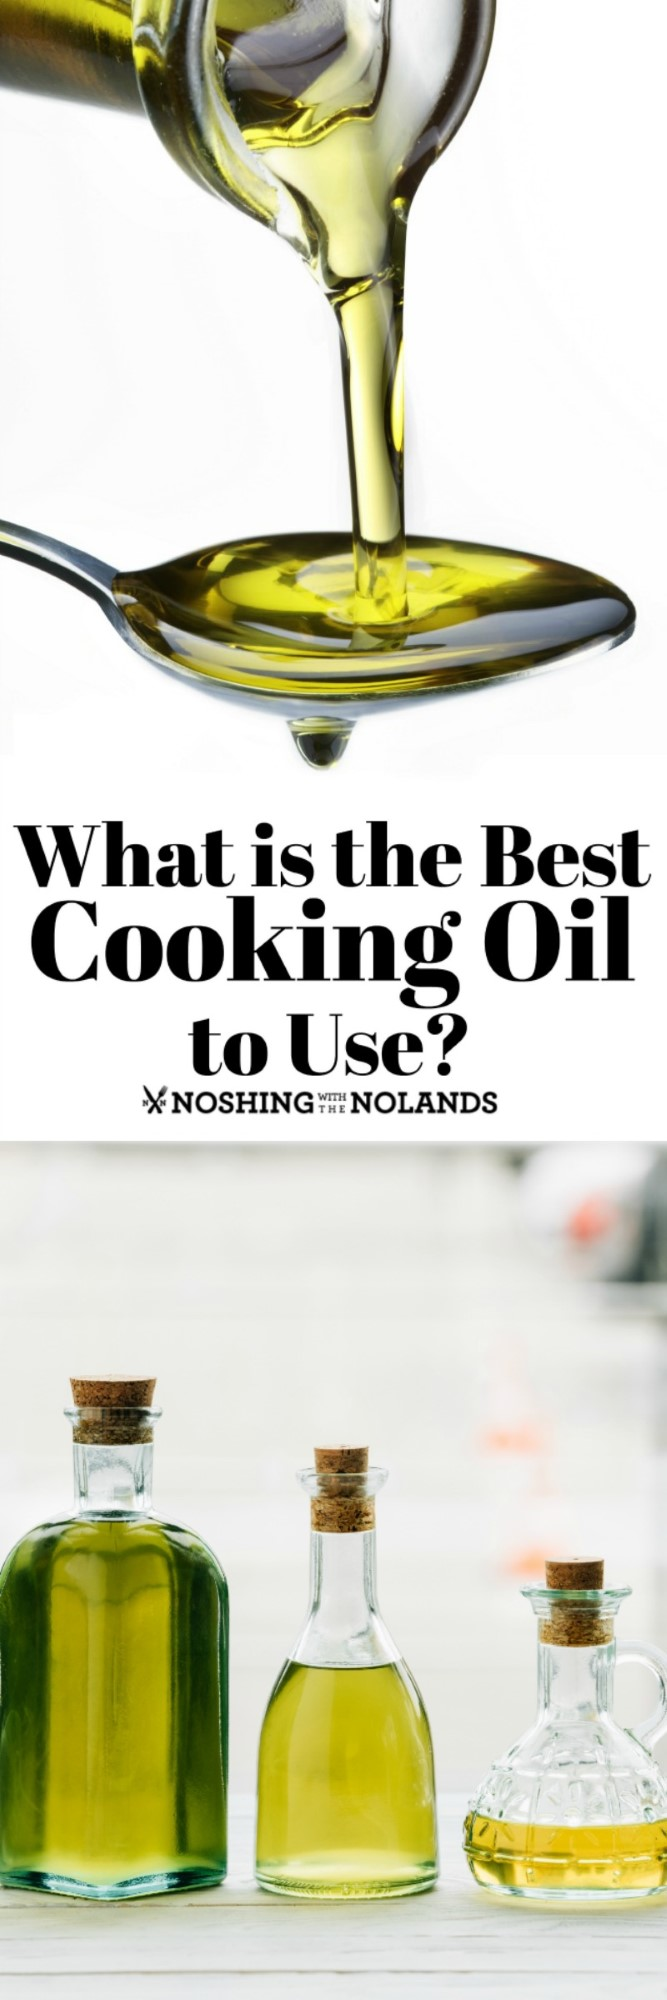 What is the Best Cooking Oil to Use? Do you know the Difference? #cookingoil #oils